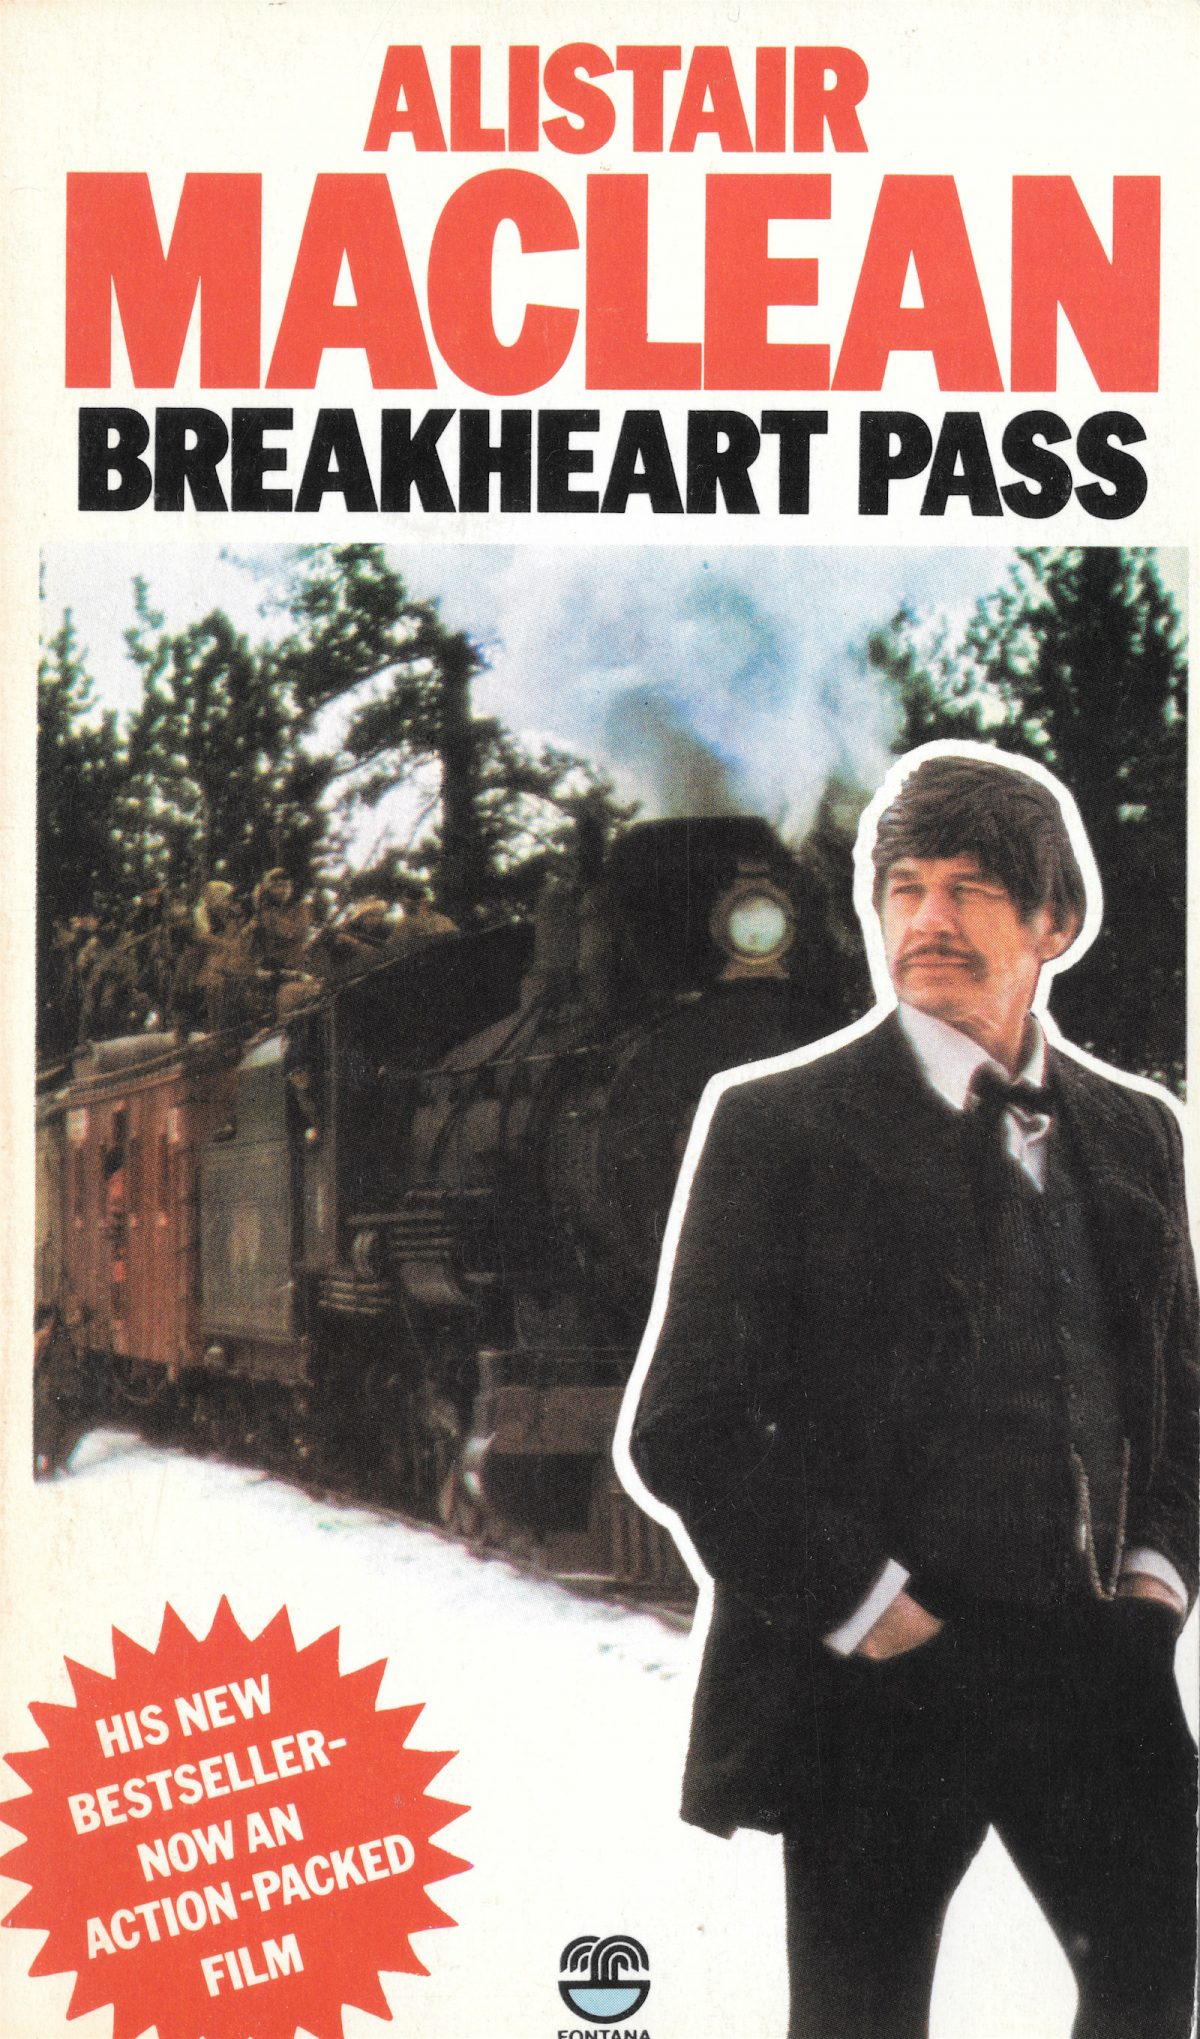 Alistair MacLean, Breakheart Pass, Charles Bronson, books